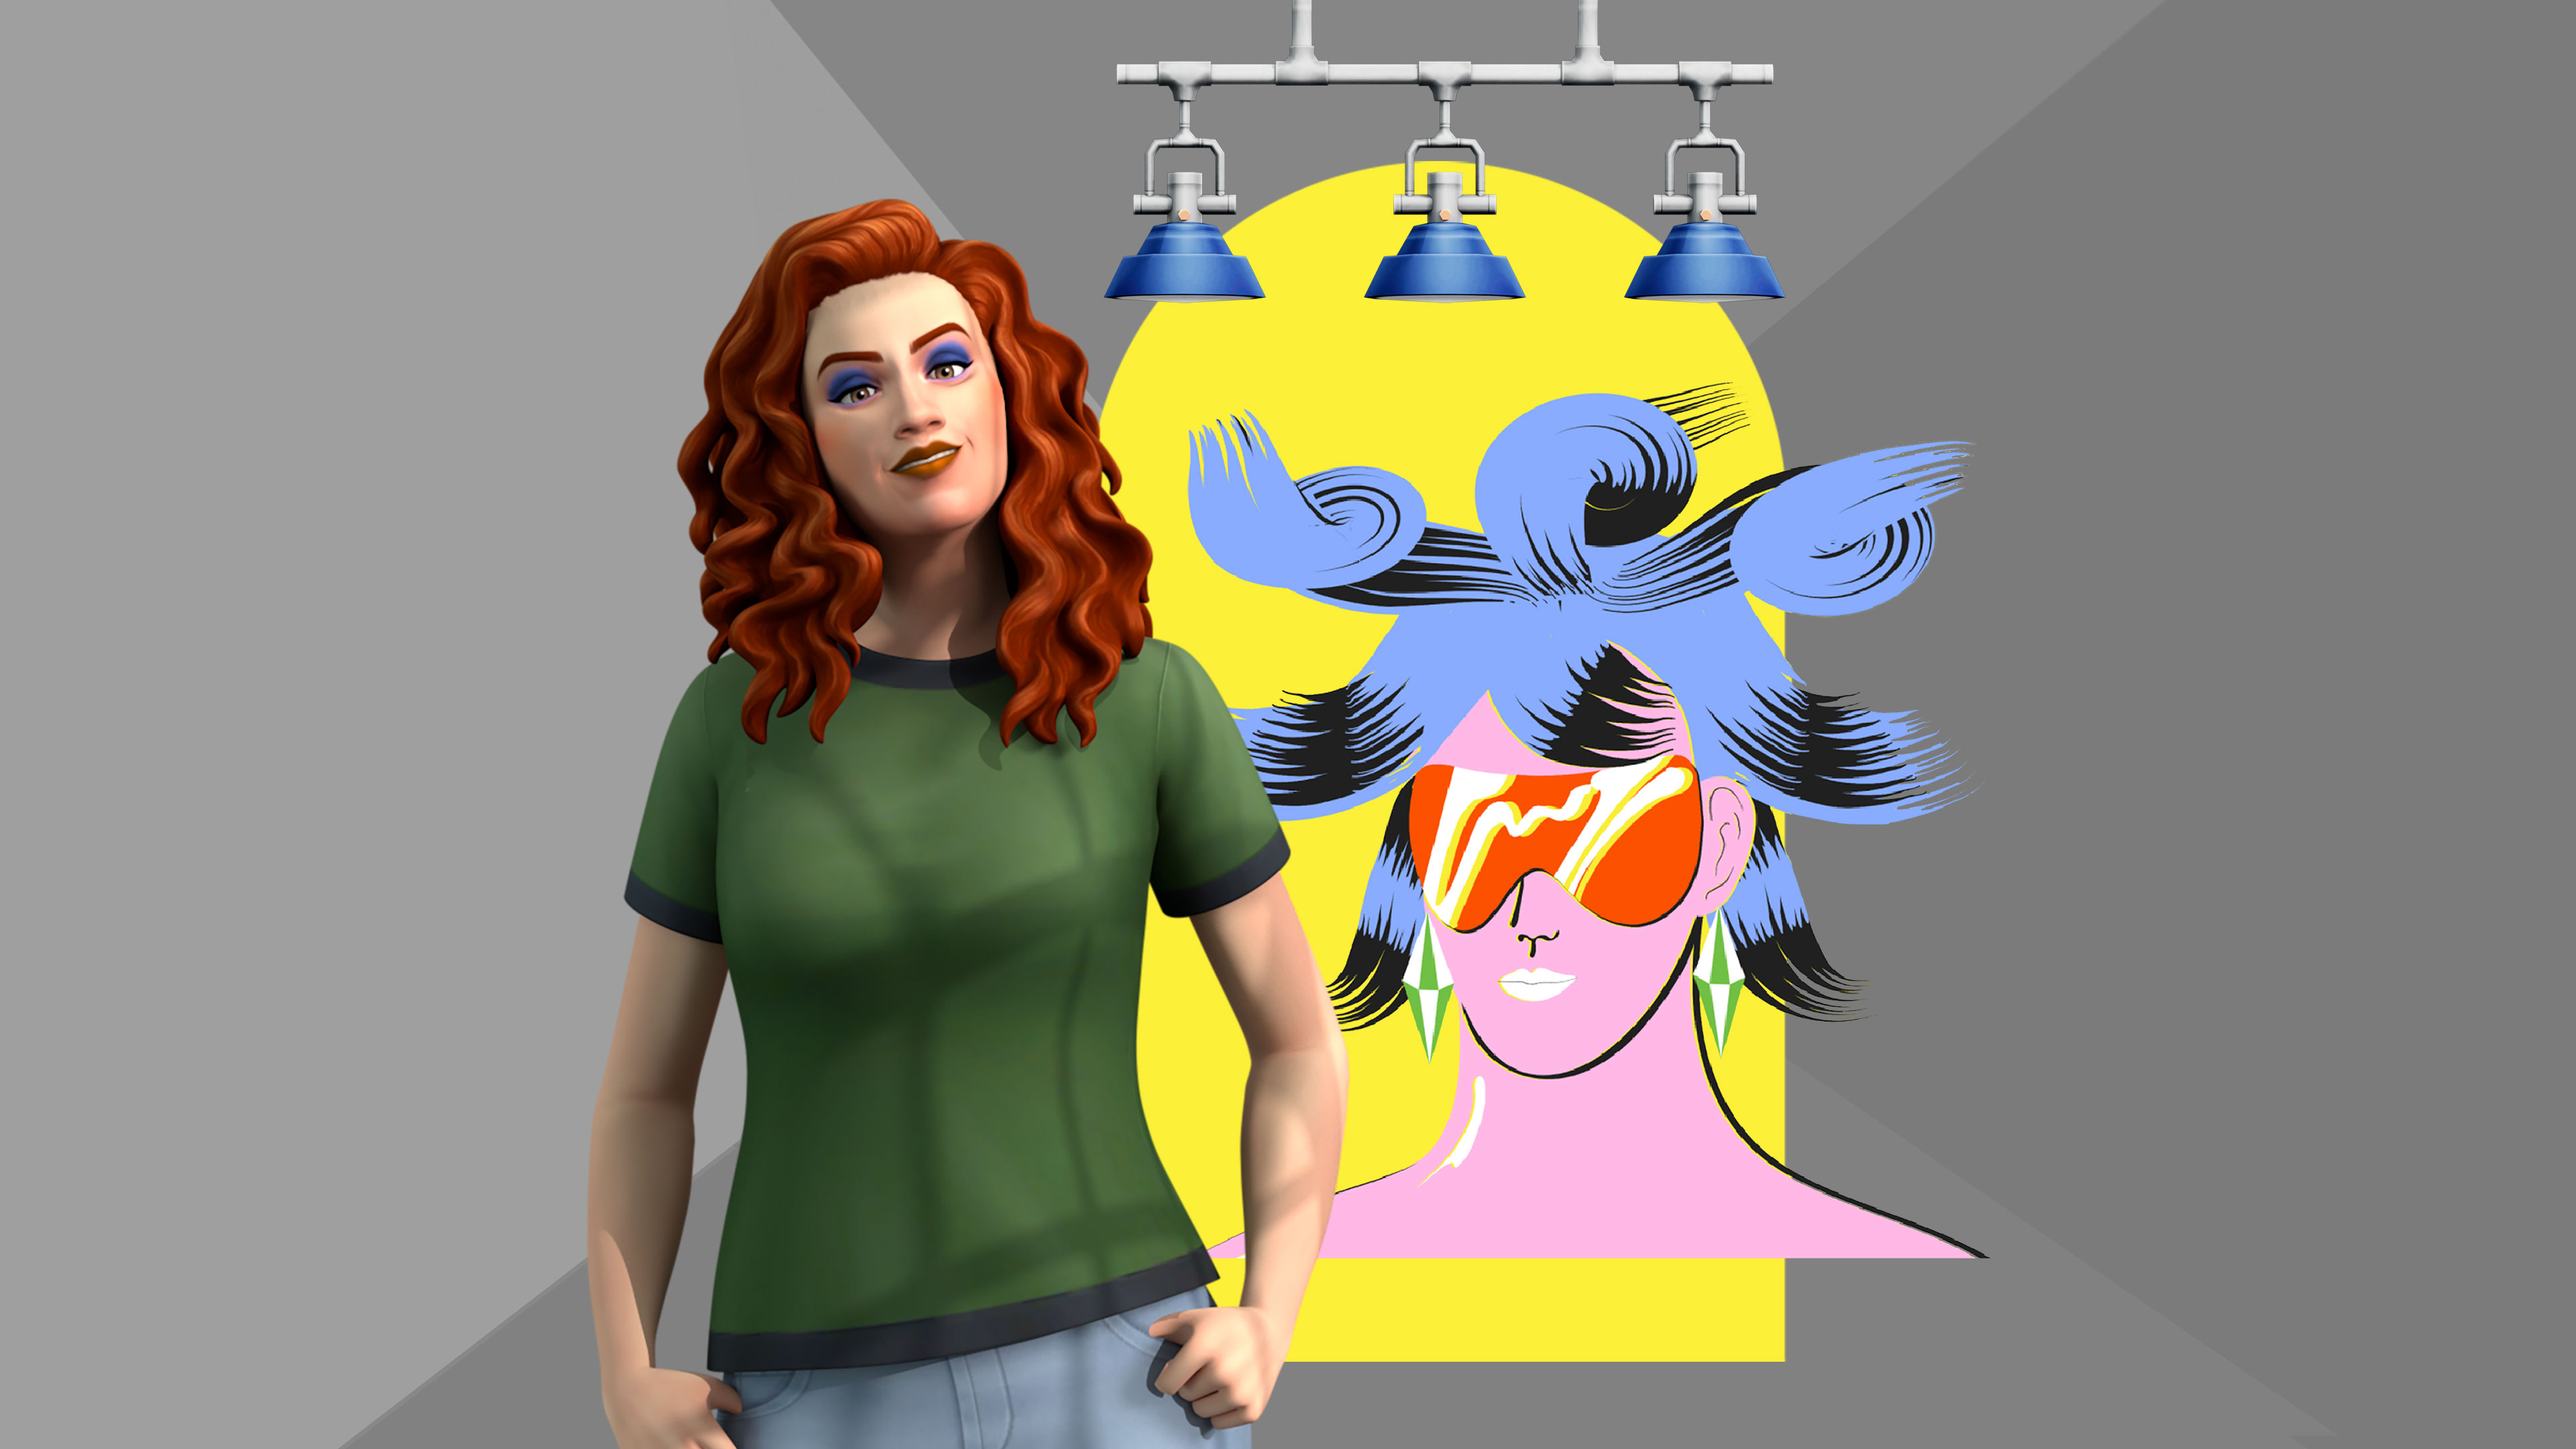 Sims character with her hands in her pockets in front of what looks like a window with a blue bird in front of it.